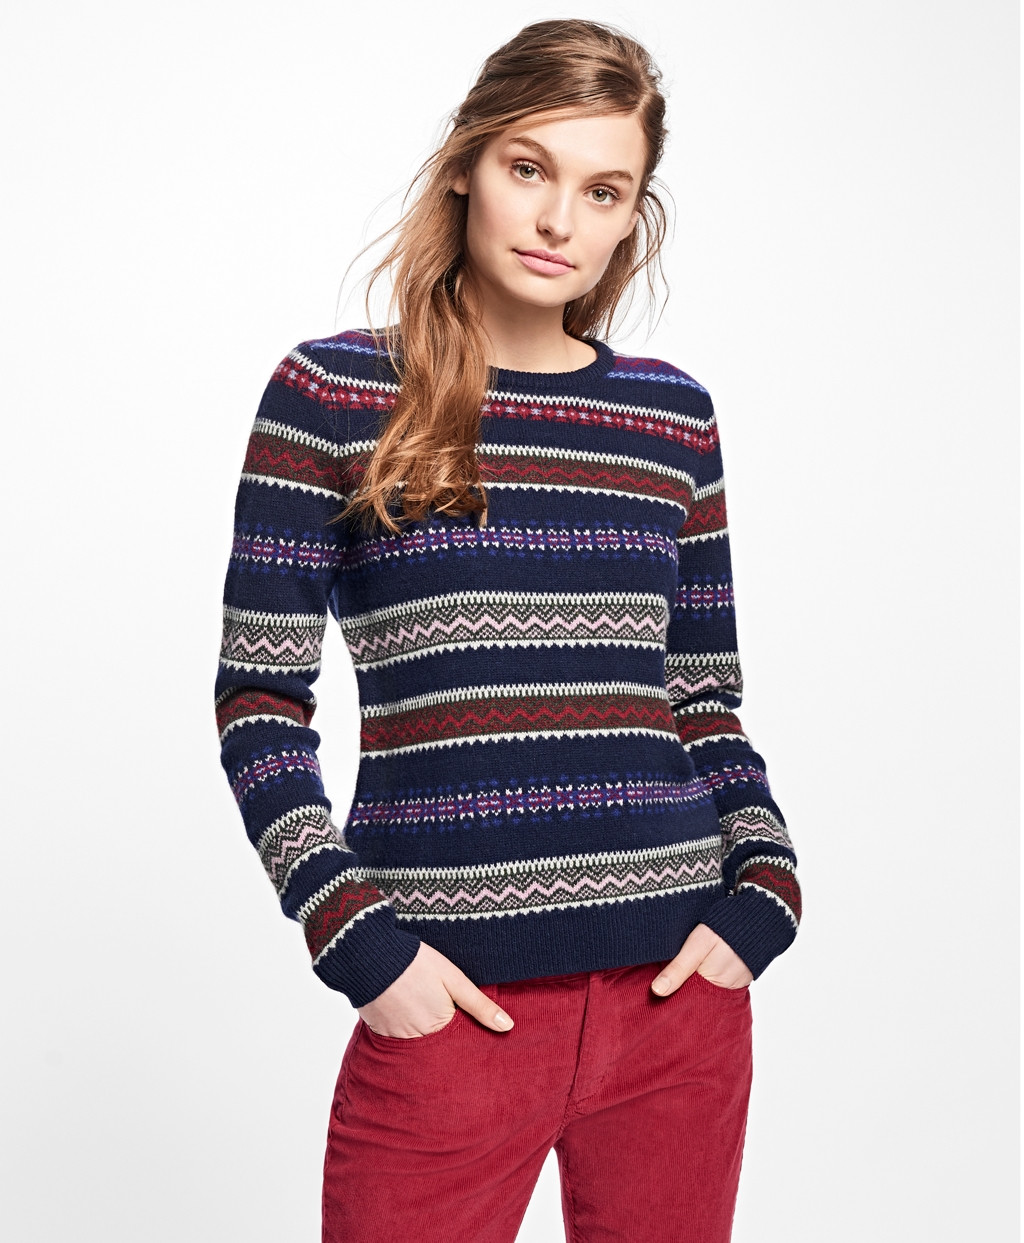 Fair Isle Sweater | Fair Isle Sweaters Women | Wool Fair Isle Sweater